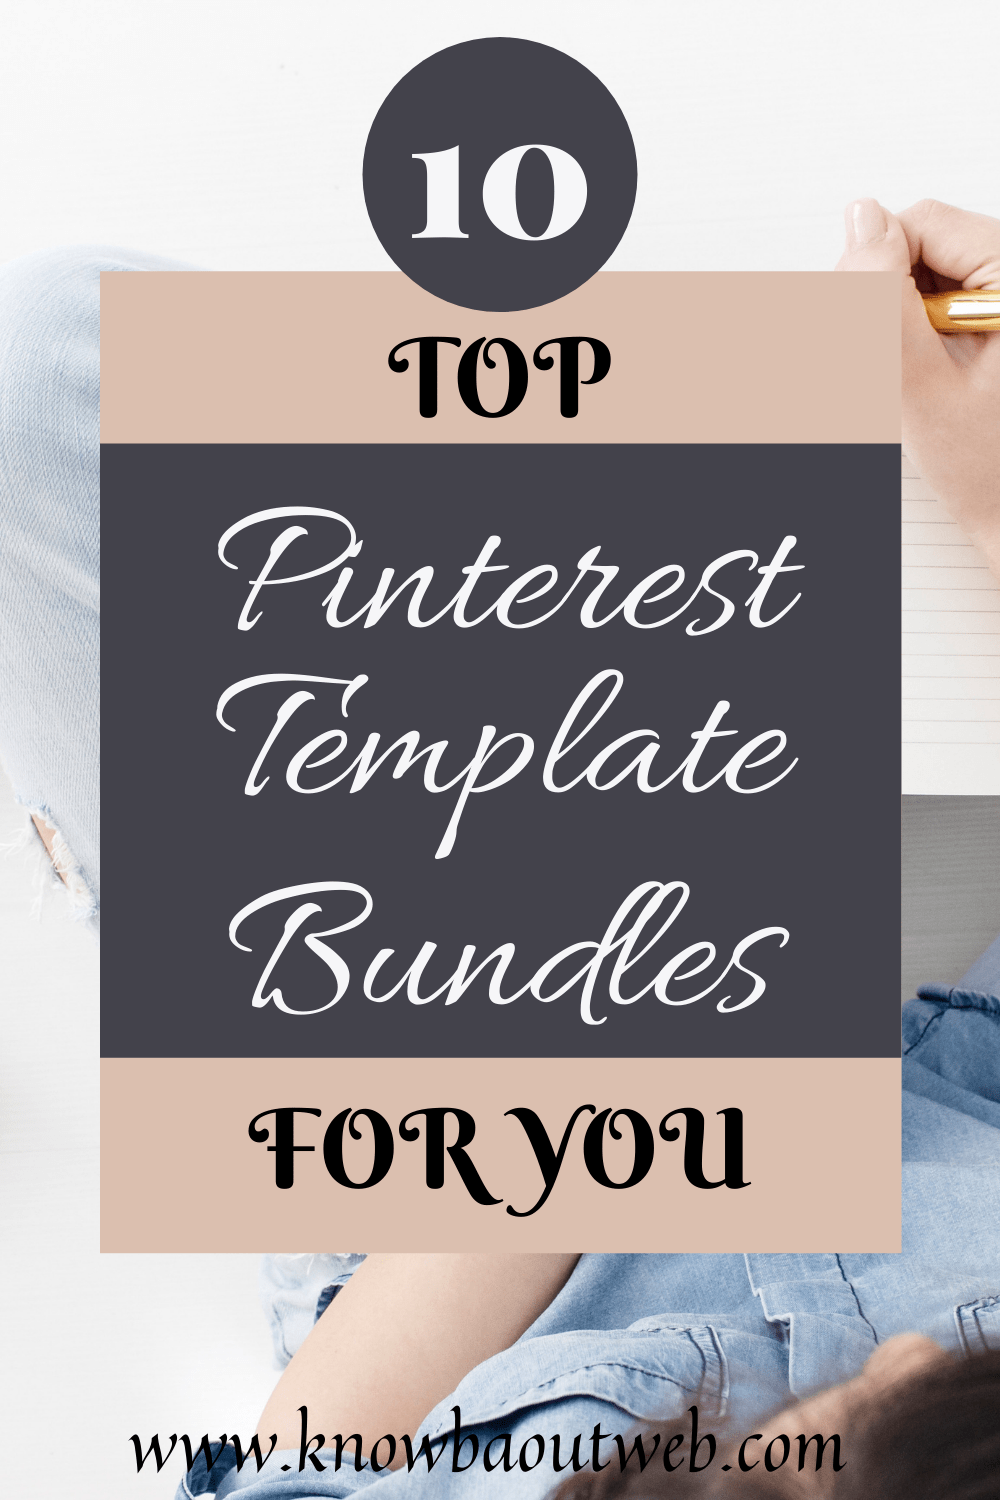 Top 10 Pinterest Template Bundles Pack For You